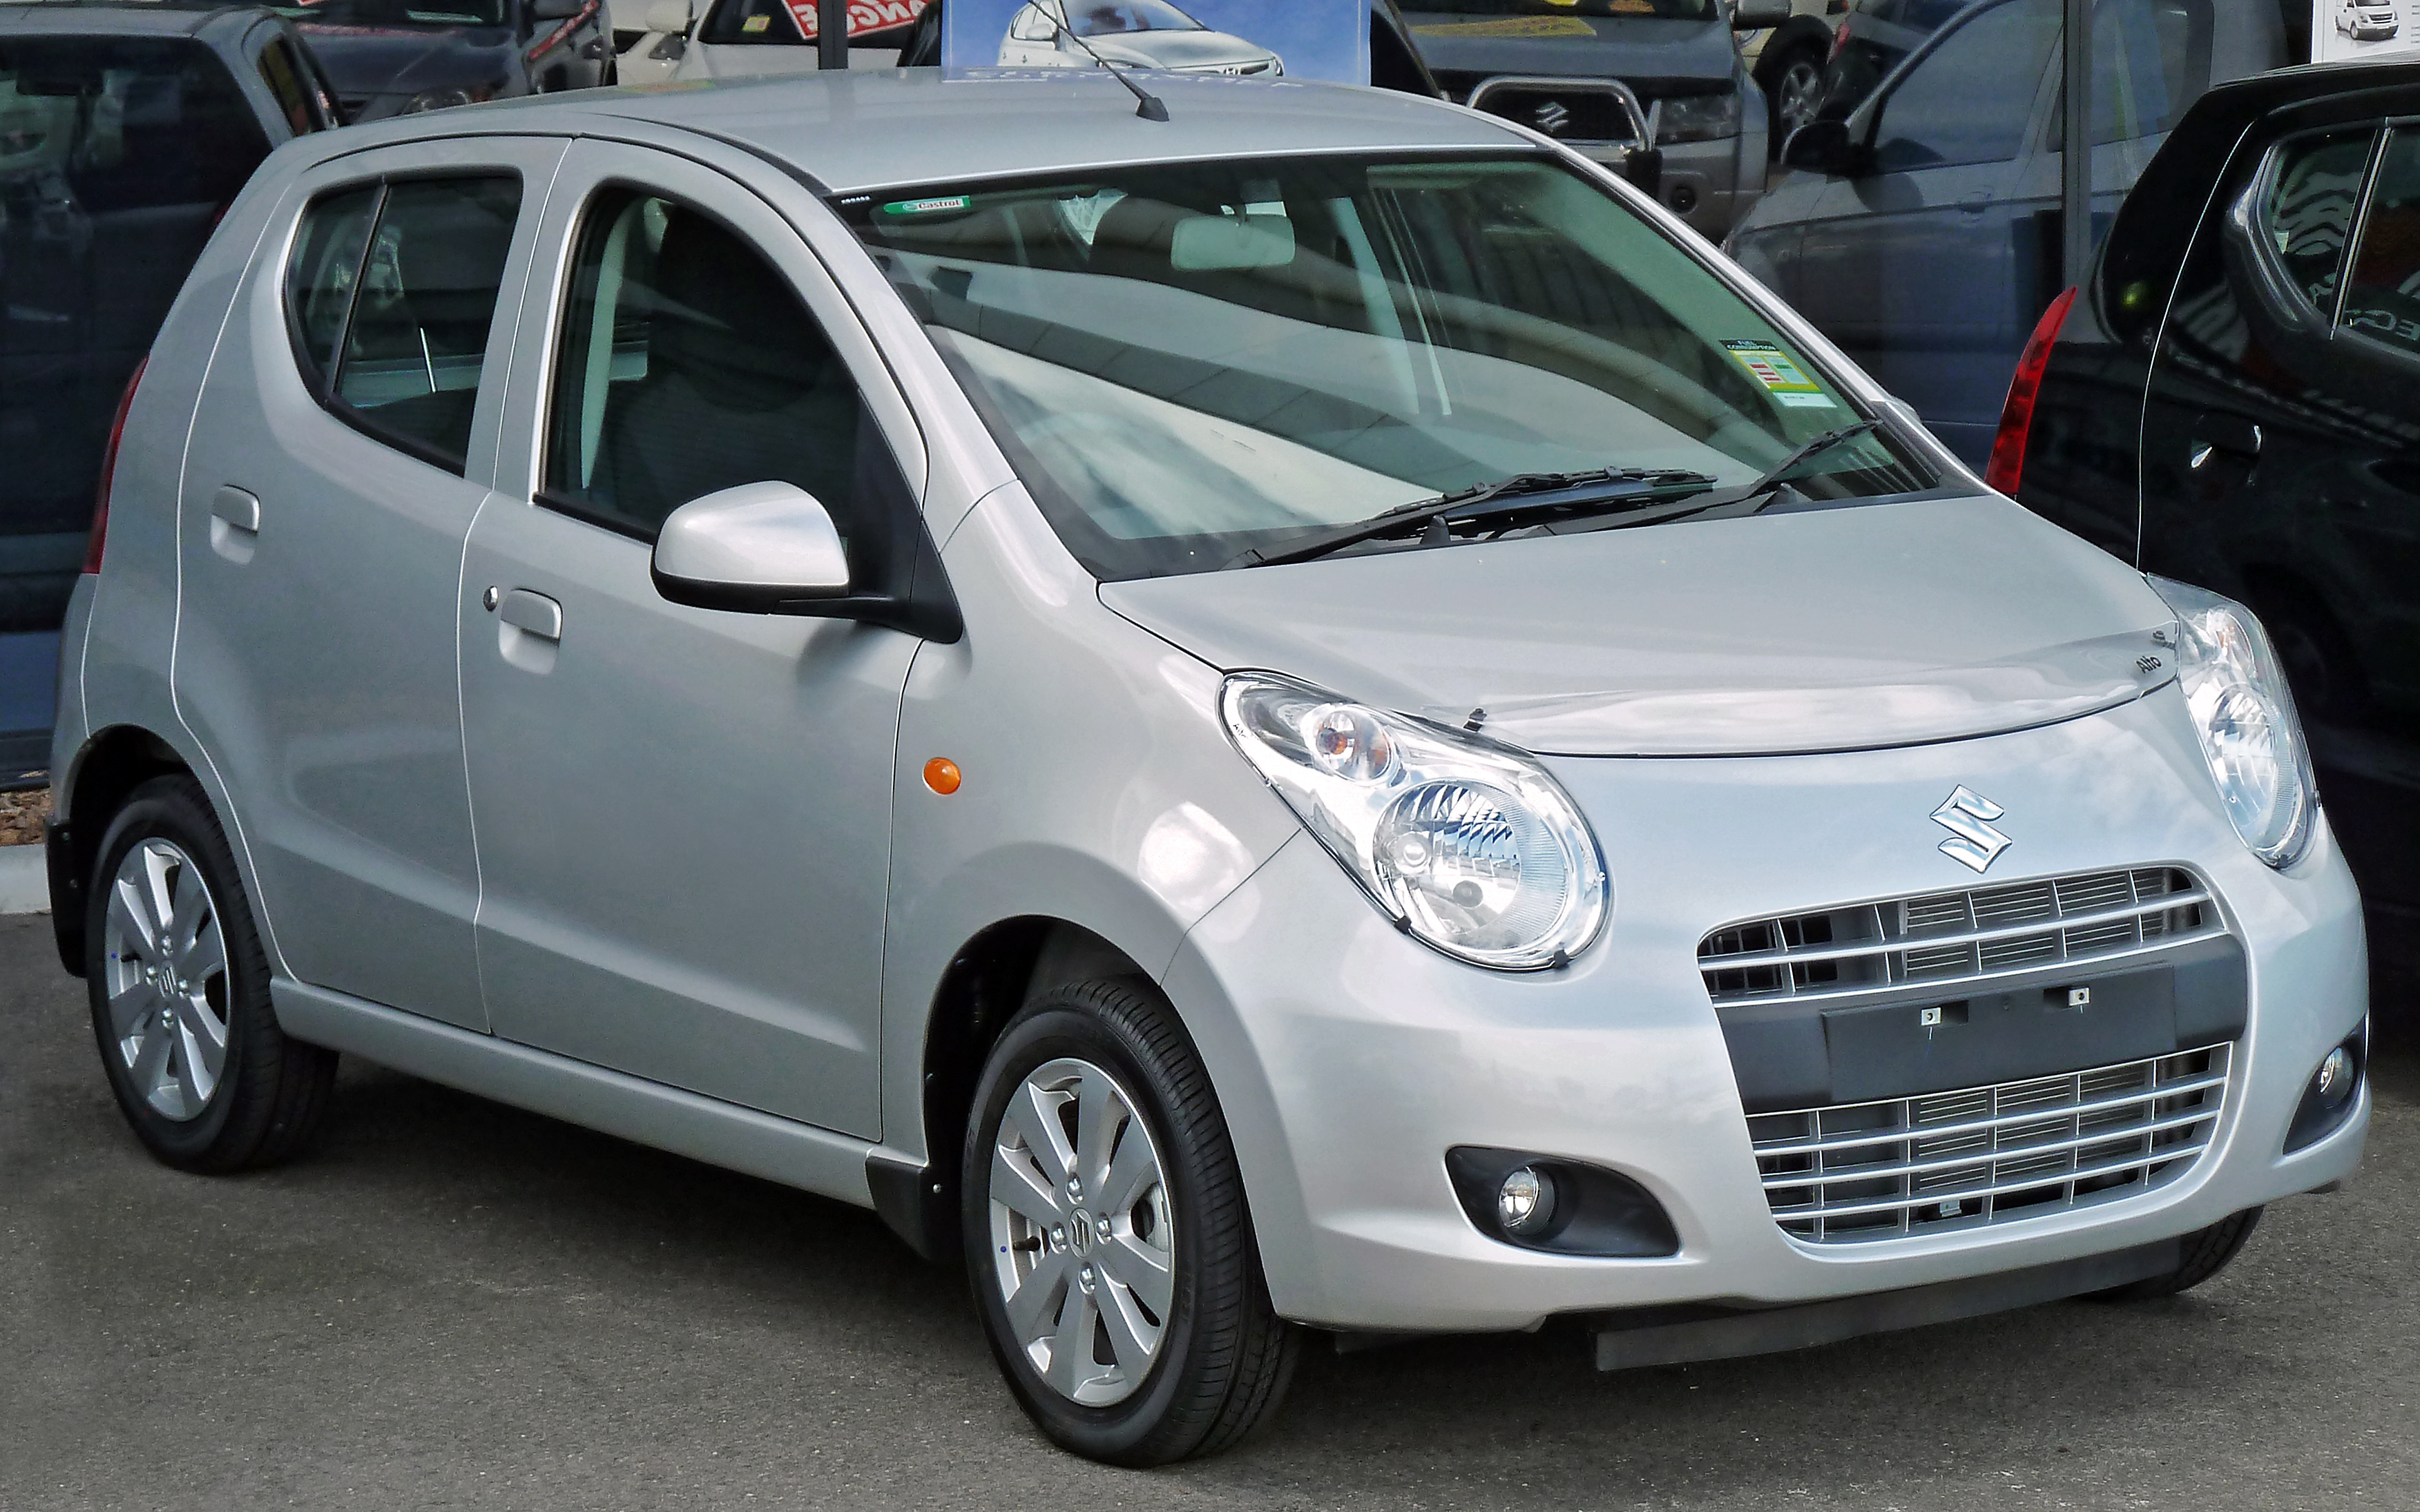 New Small Cars For Sale Uk